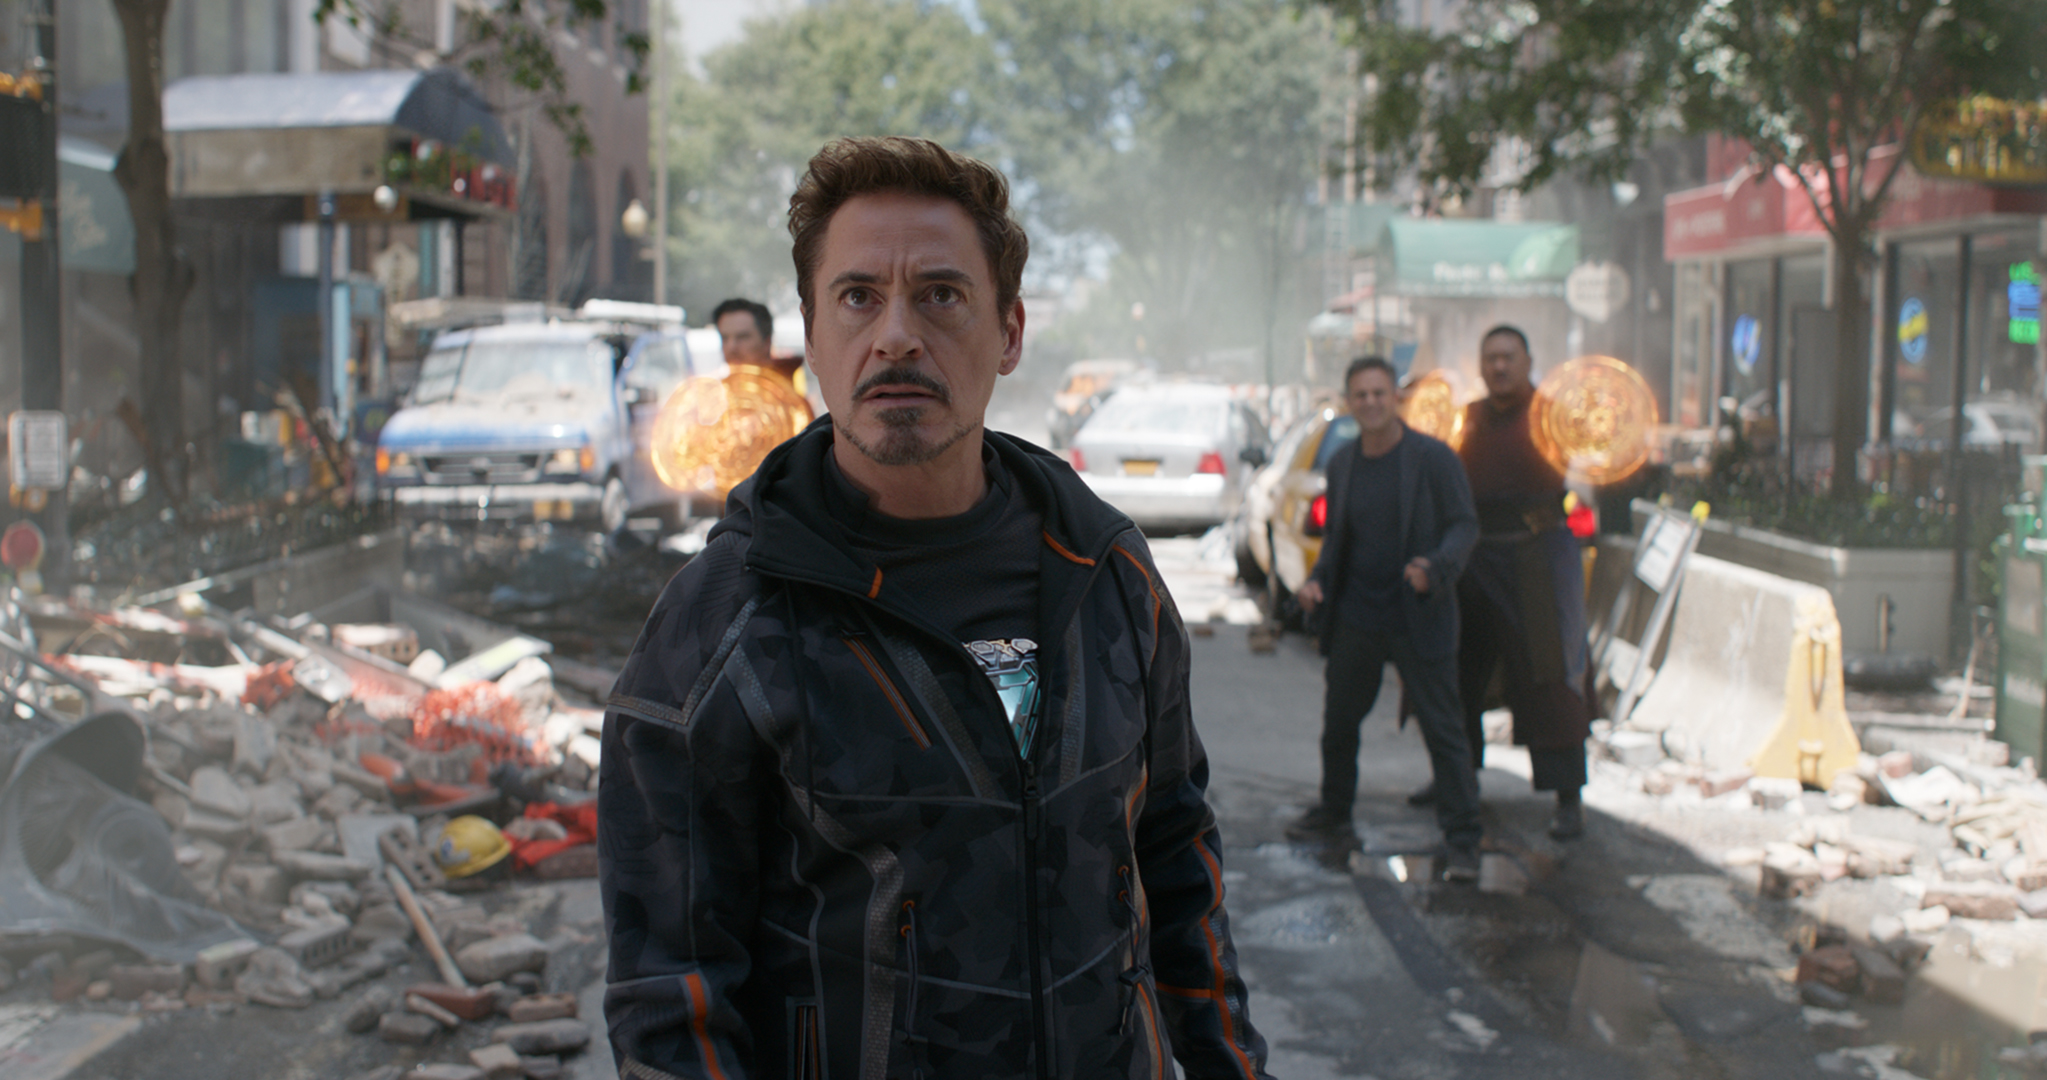 Tony Stark, Doctor Strange, Bruce Banner and Wong face off against Squidward.